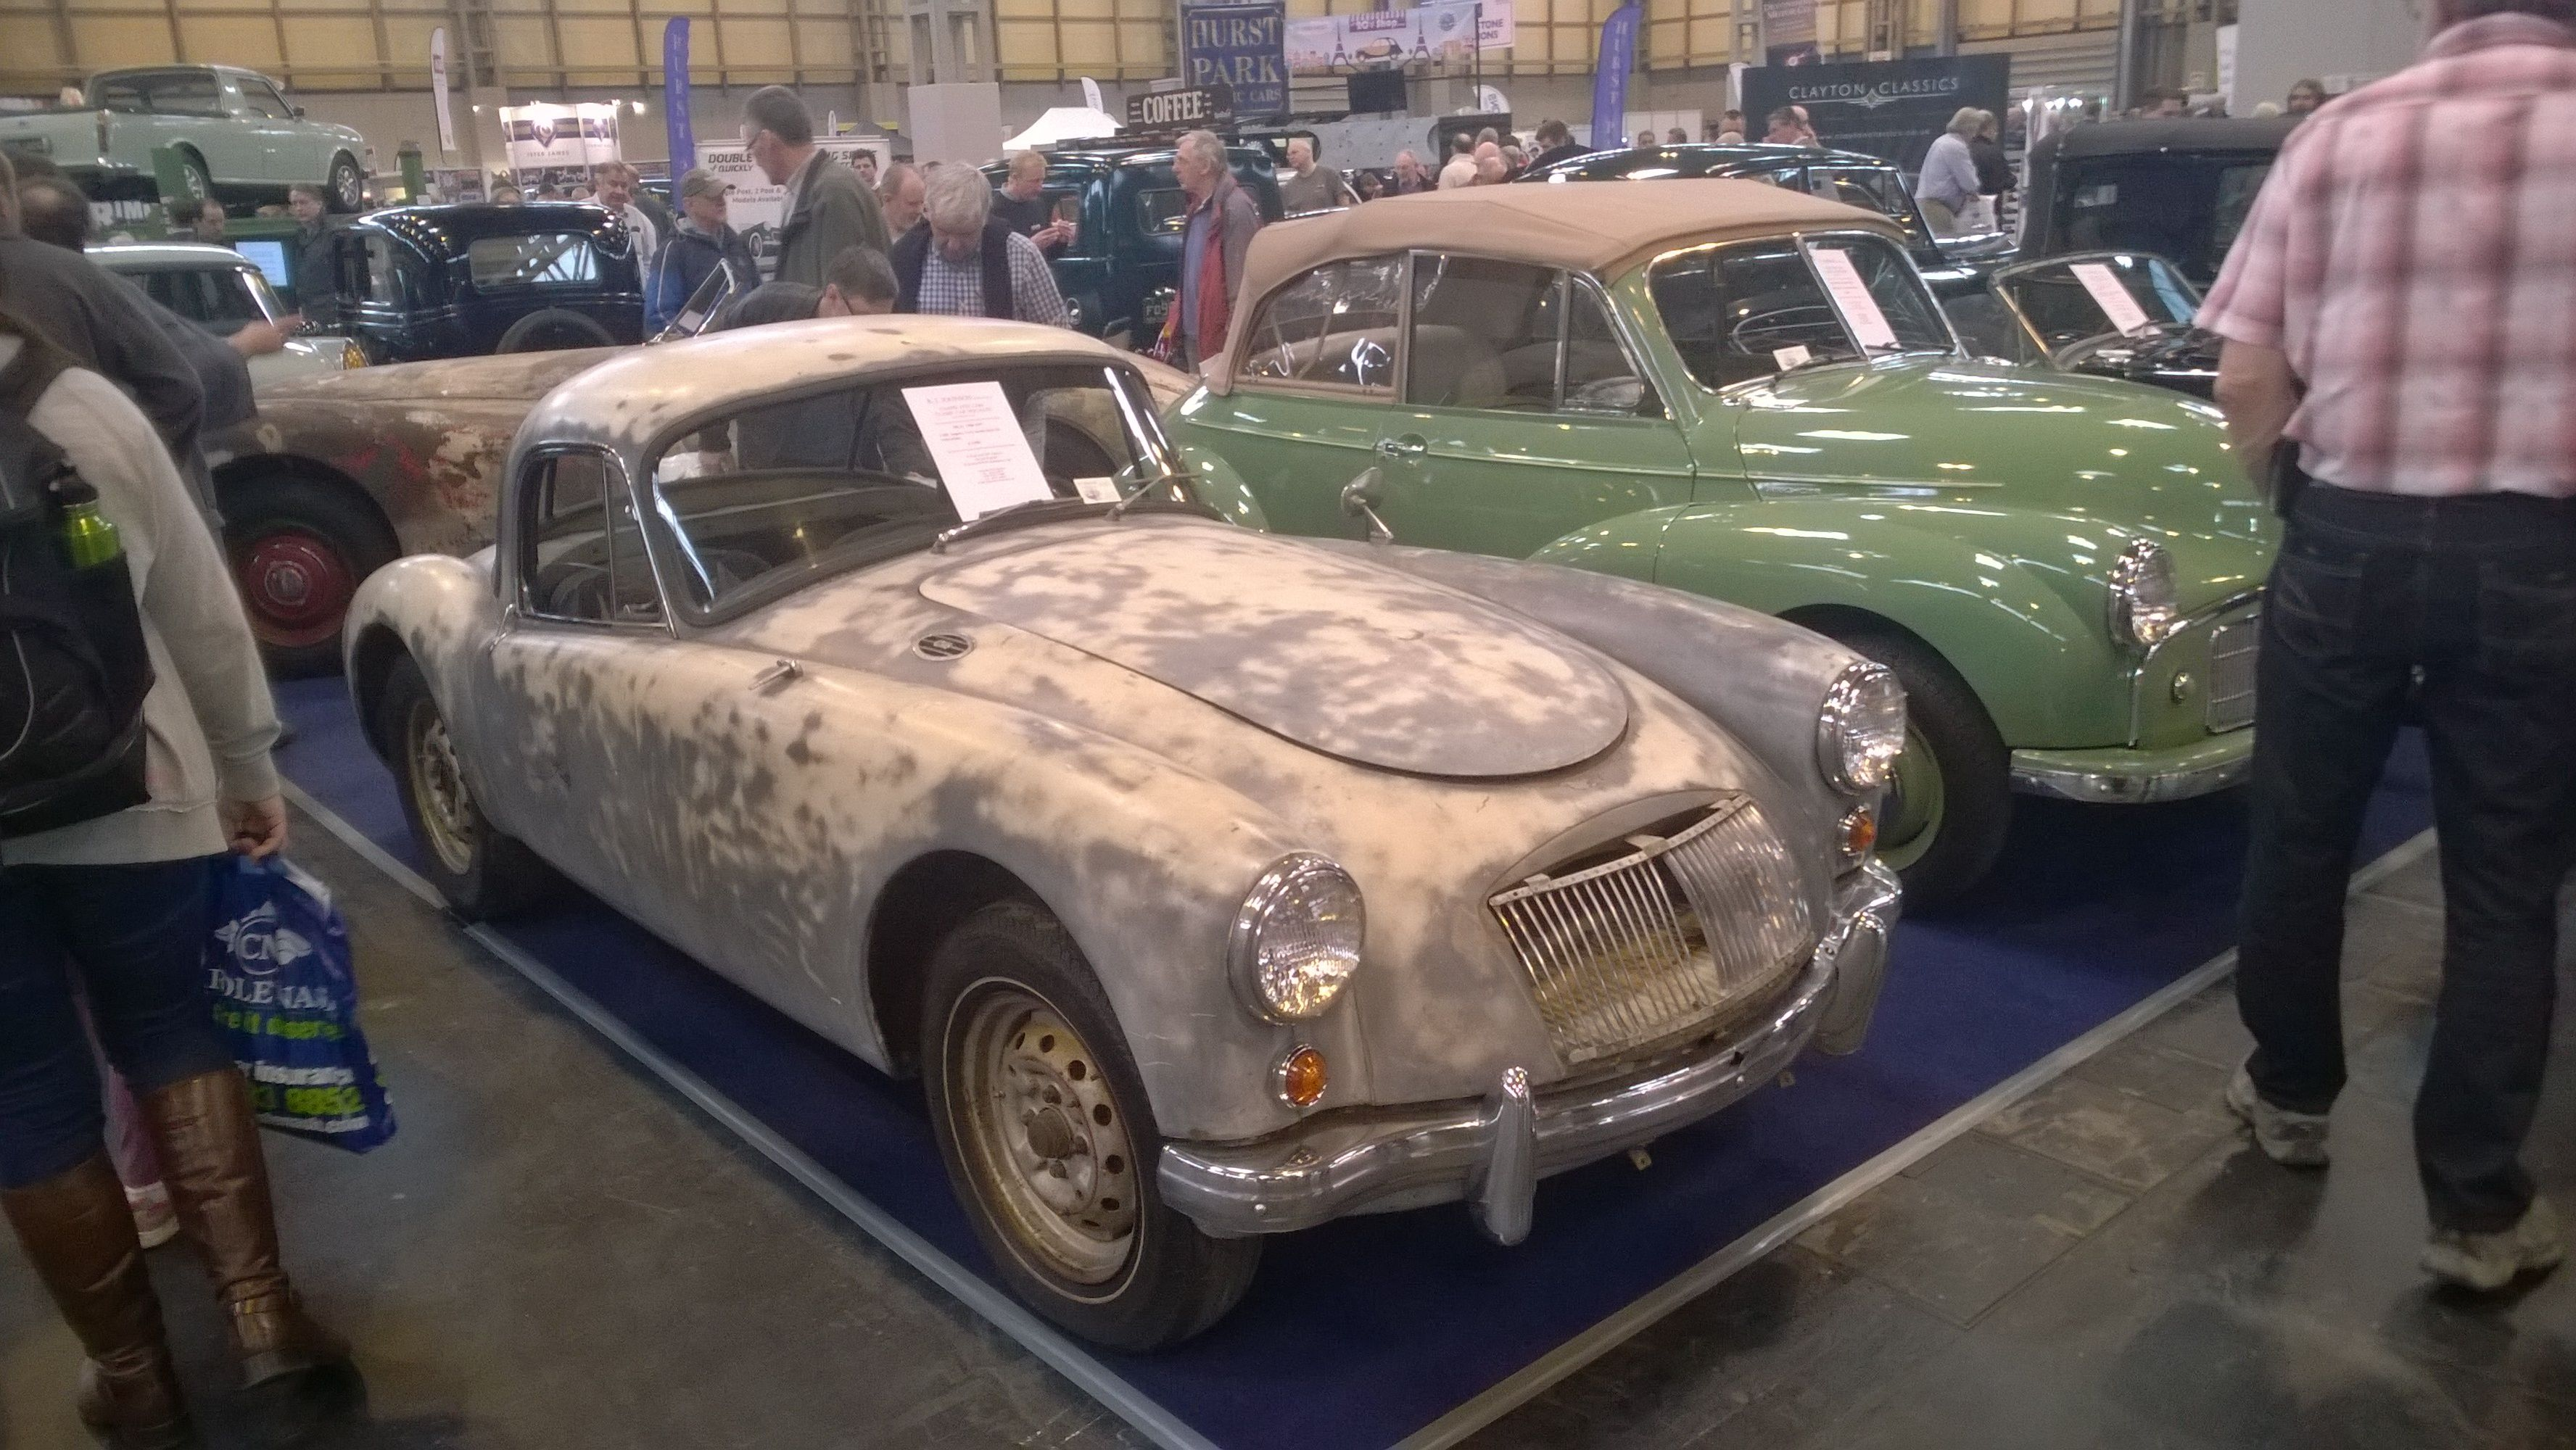 Yet another beautiful car (mg a this time) in need of restoration